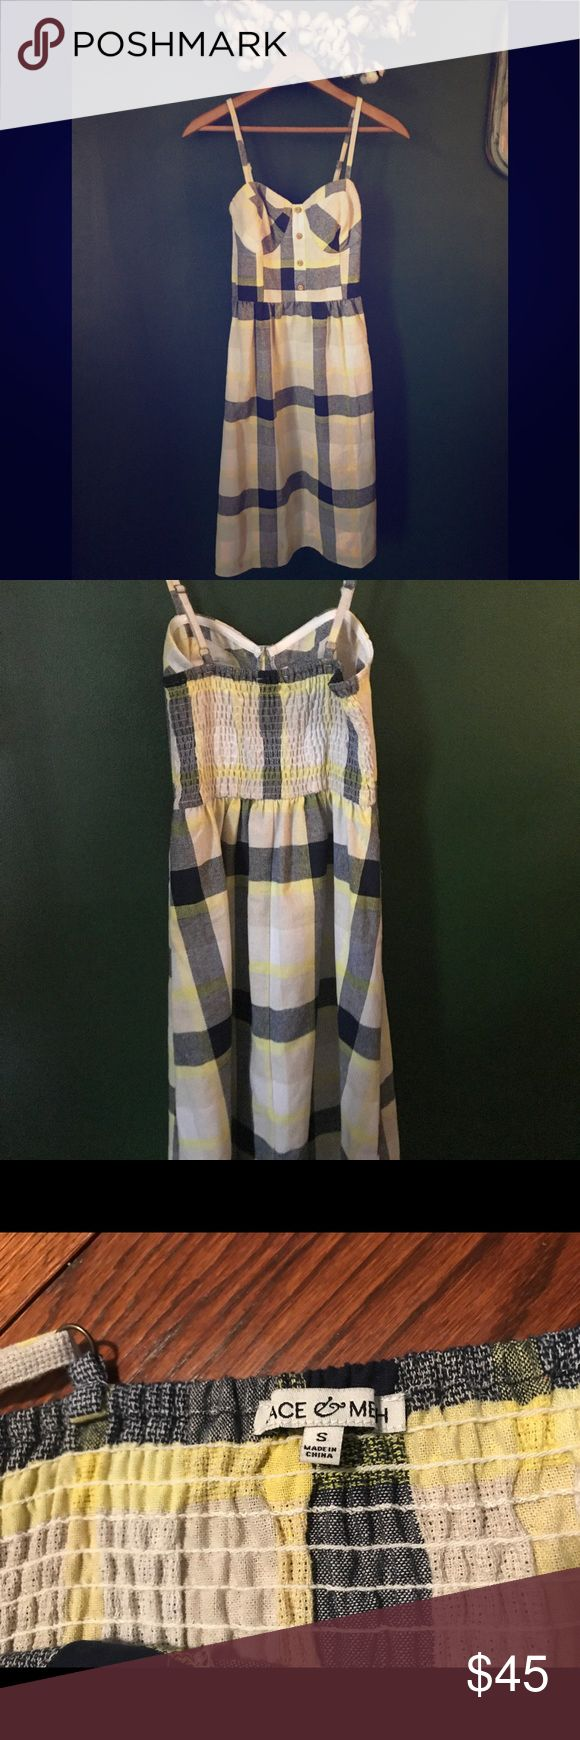 Mod Cloth Picnic Dress Flattering Mod Cloth Dress in Cheerful Blue and Yellow Plaid. Size Small. Fabric is a Linen, Cotton, Viscose Blend. Worn once with lots of compliments. Perfect for picnics, parties, and would pack well for travel. Modcloth Dresses Midi